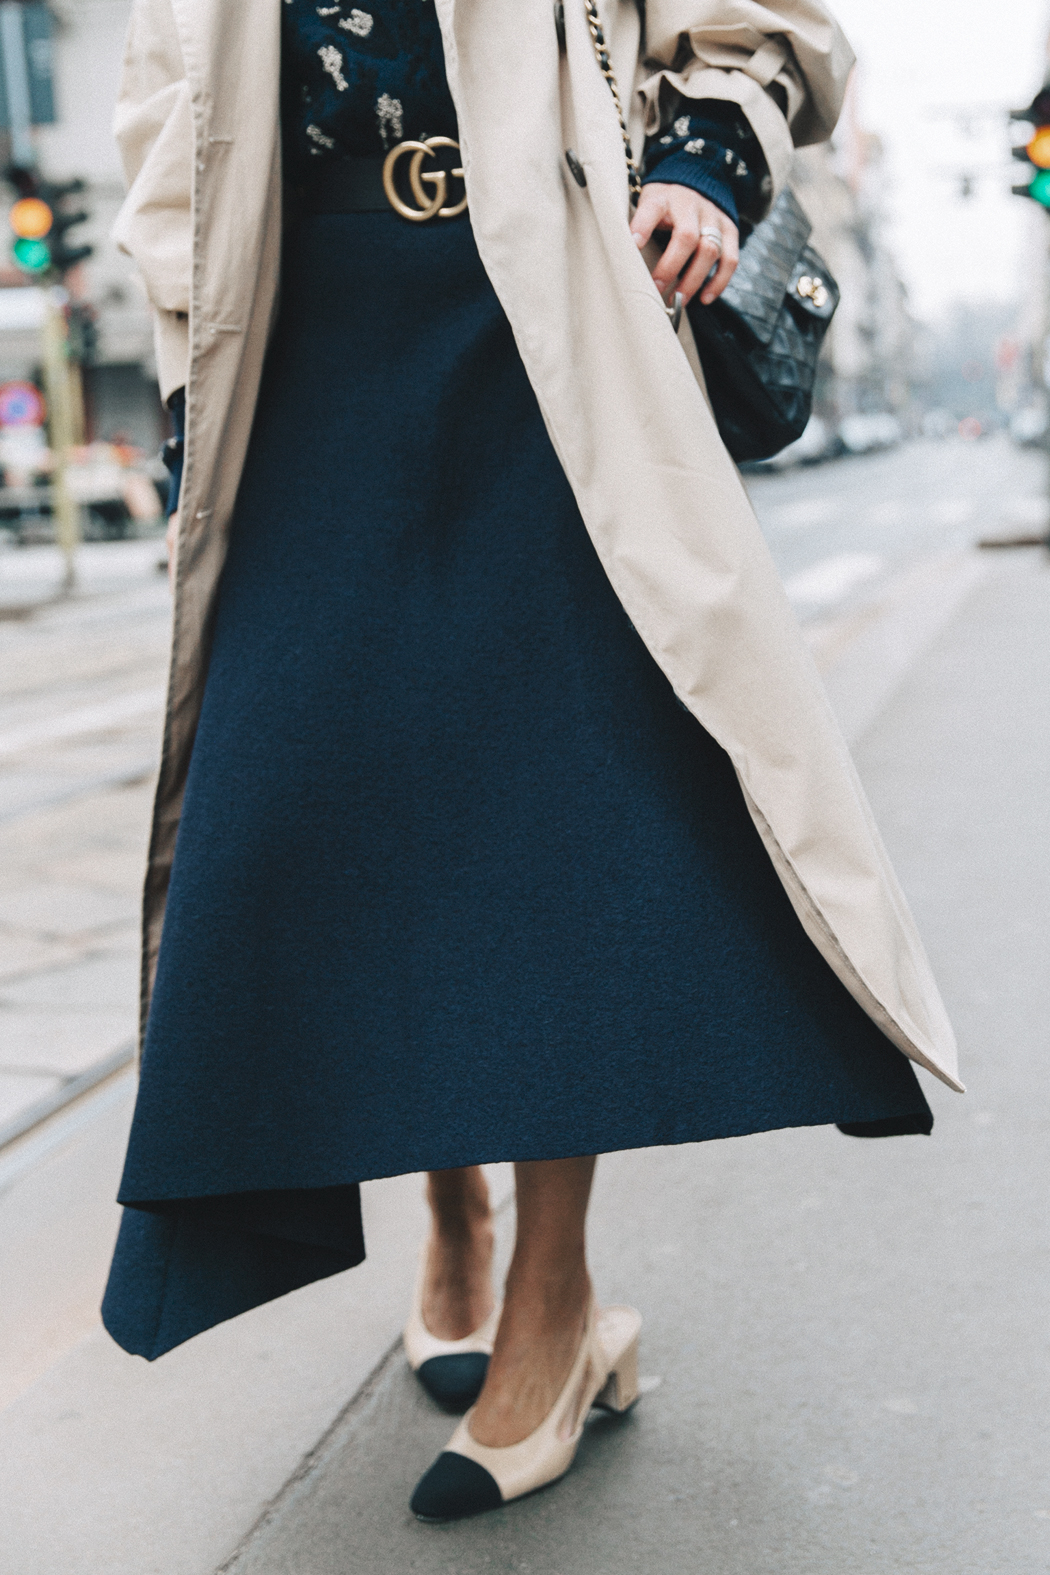 Trench_Edited-Leopard_Sweater-Midi_Skirt-Chanel_Slingback_Shoes-Chanel_Vintage_Bag-Ouftit_Streetstyle-53